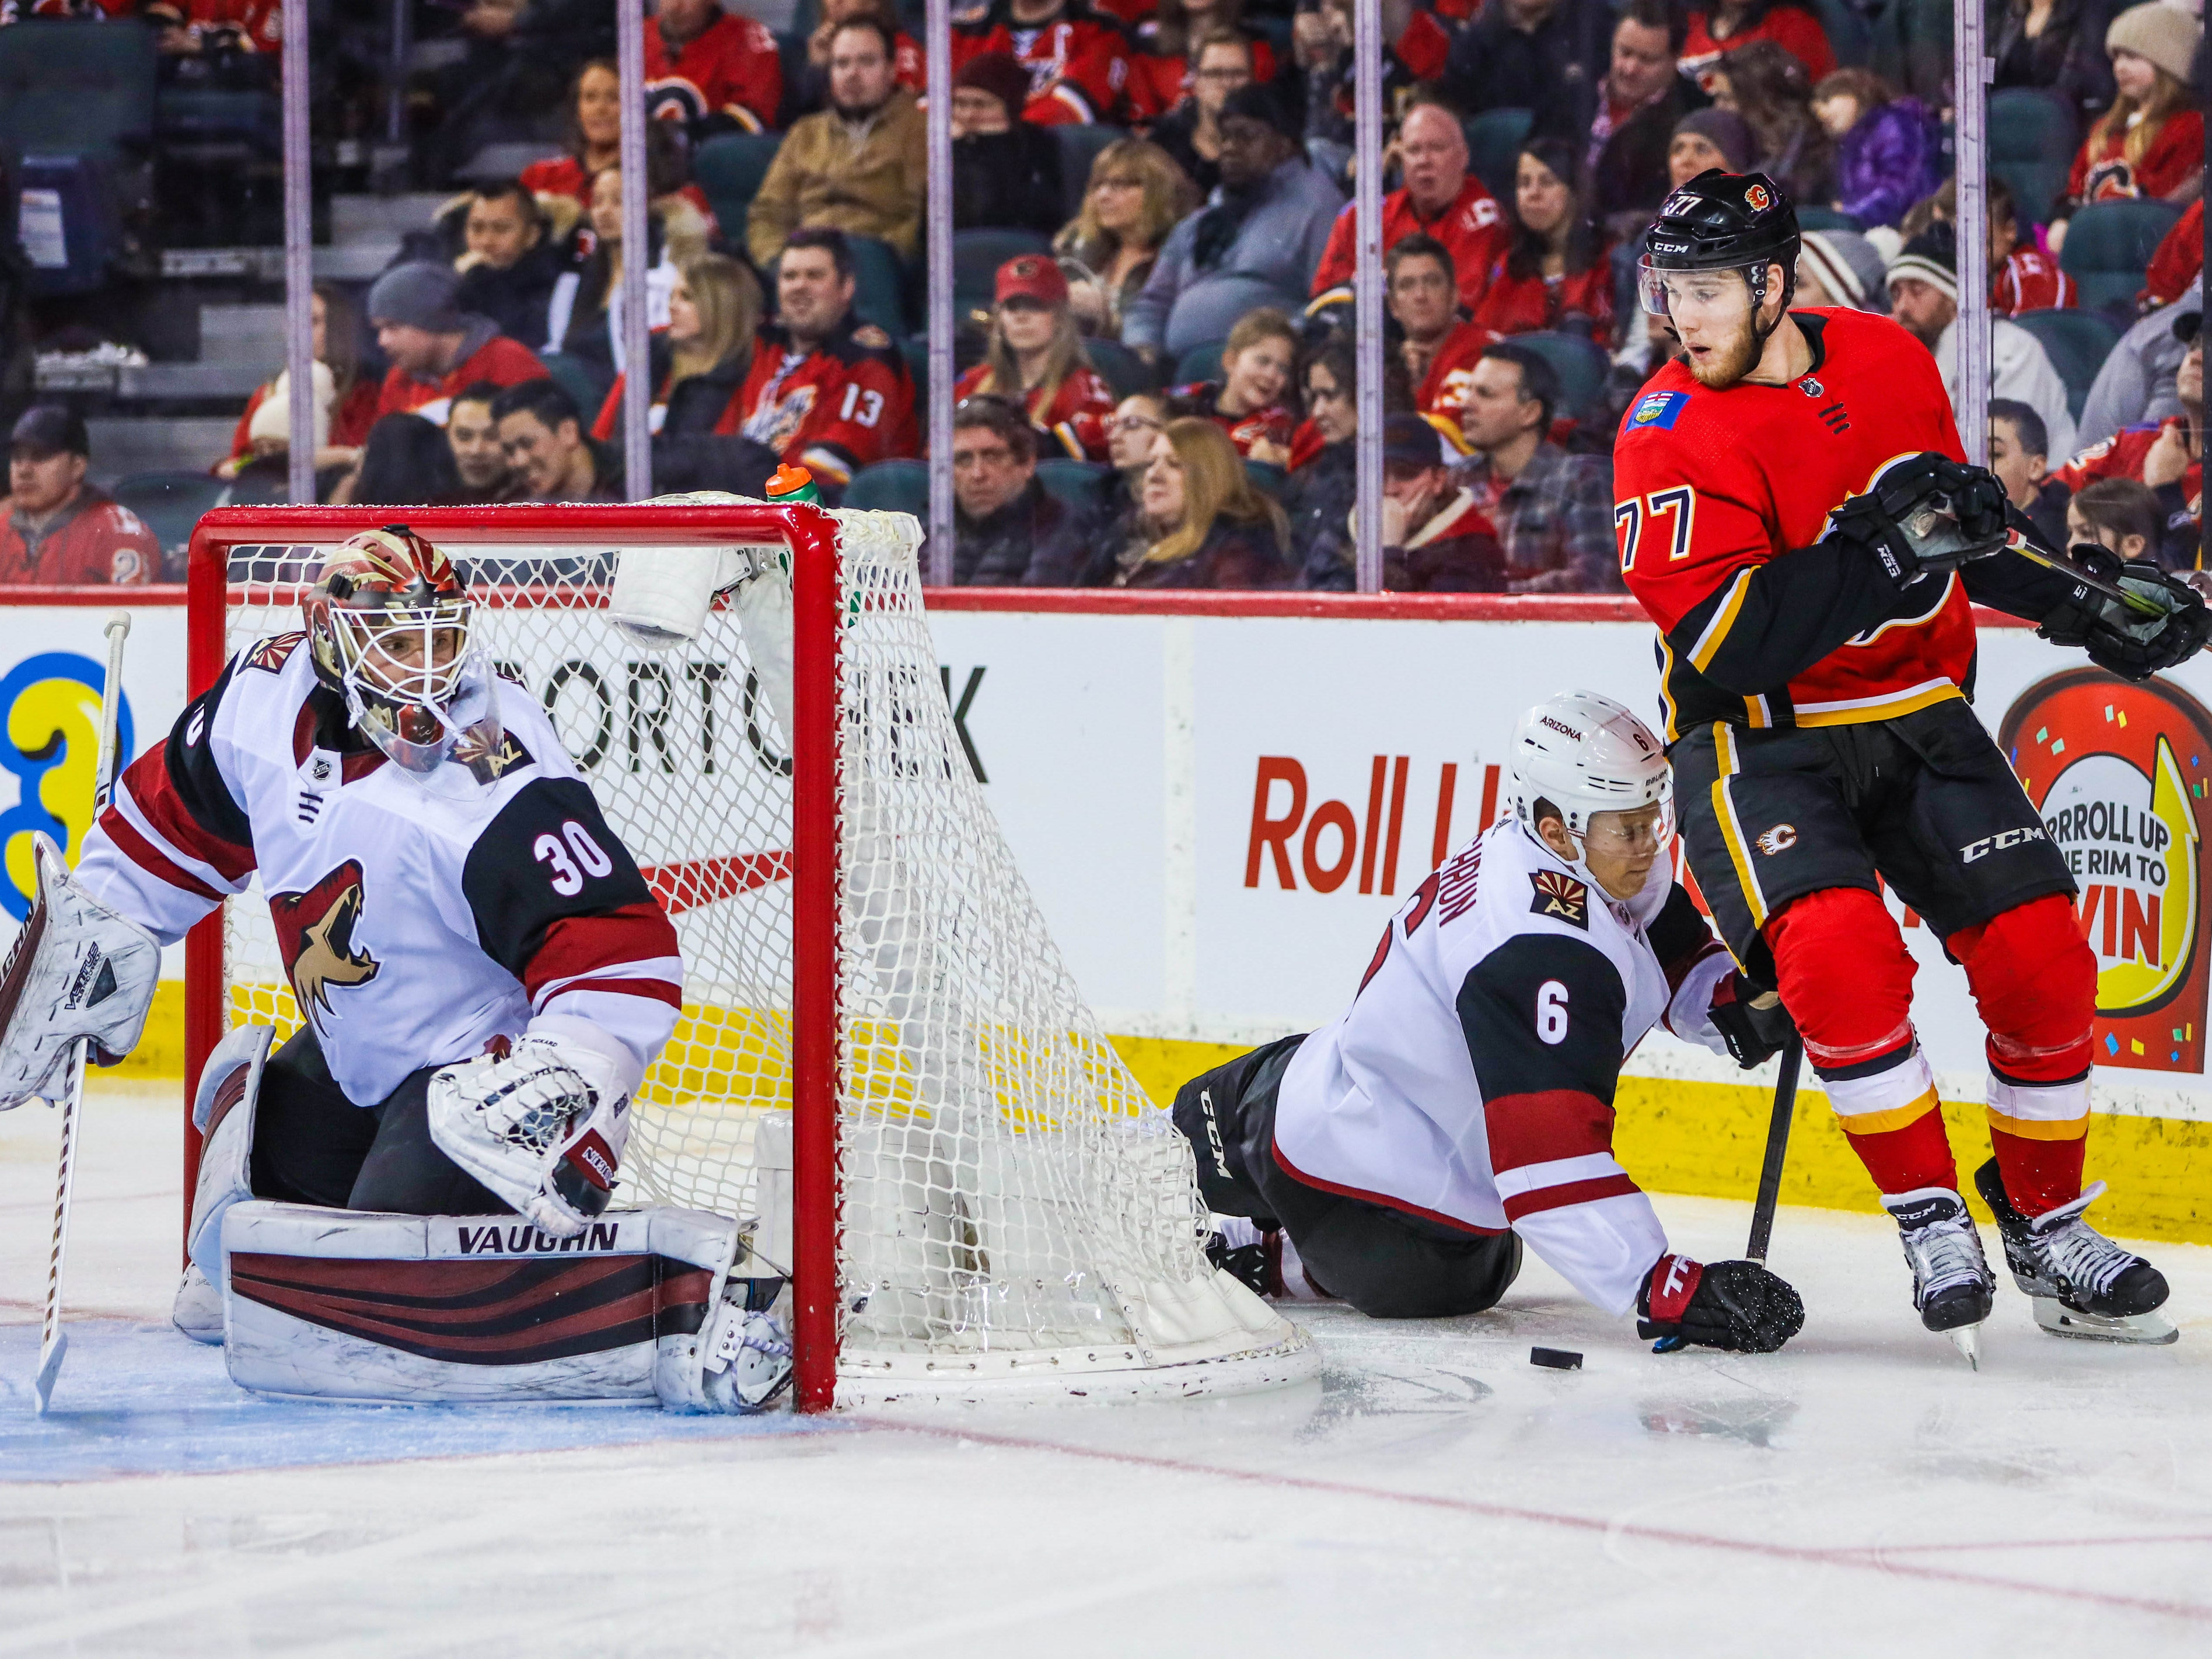 Feb 18, 2019; Calgary, Alberta, CAN; Arizona Coyotes defenseman Jakob Chychrun (6) and Calgary Flames center Mark Jankowski (77) battle for the puck as Arizona Coyotes goaltender Calvin Pickard (30) guards his net during the third period at Scotiabank Saddledome. Calgary Flames won 5-2. Mandatory Credit: Sergei Belski-USA TODAY Sports